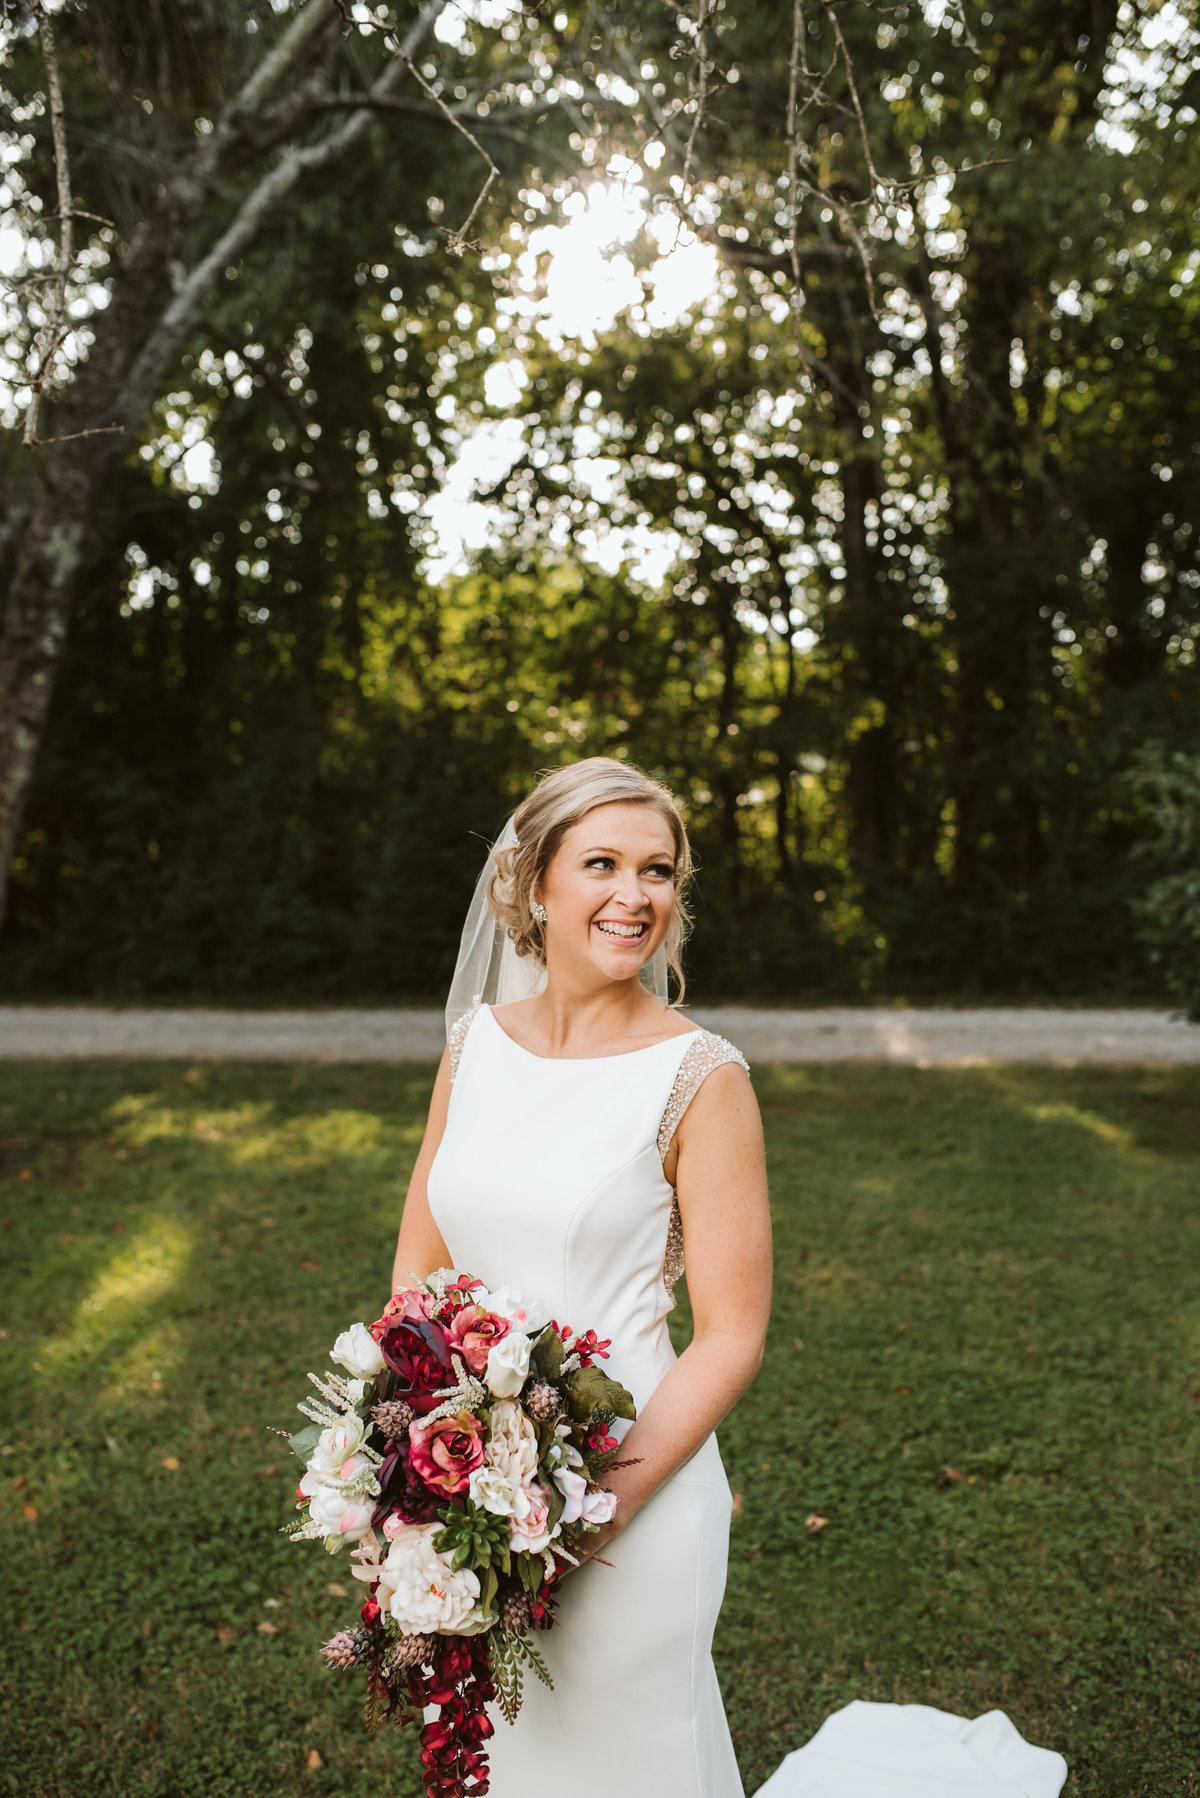 rebeccaburtphotography.MollyandOrreyLloydWedding.WaverlyEstate.Lunenburgwedding-462